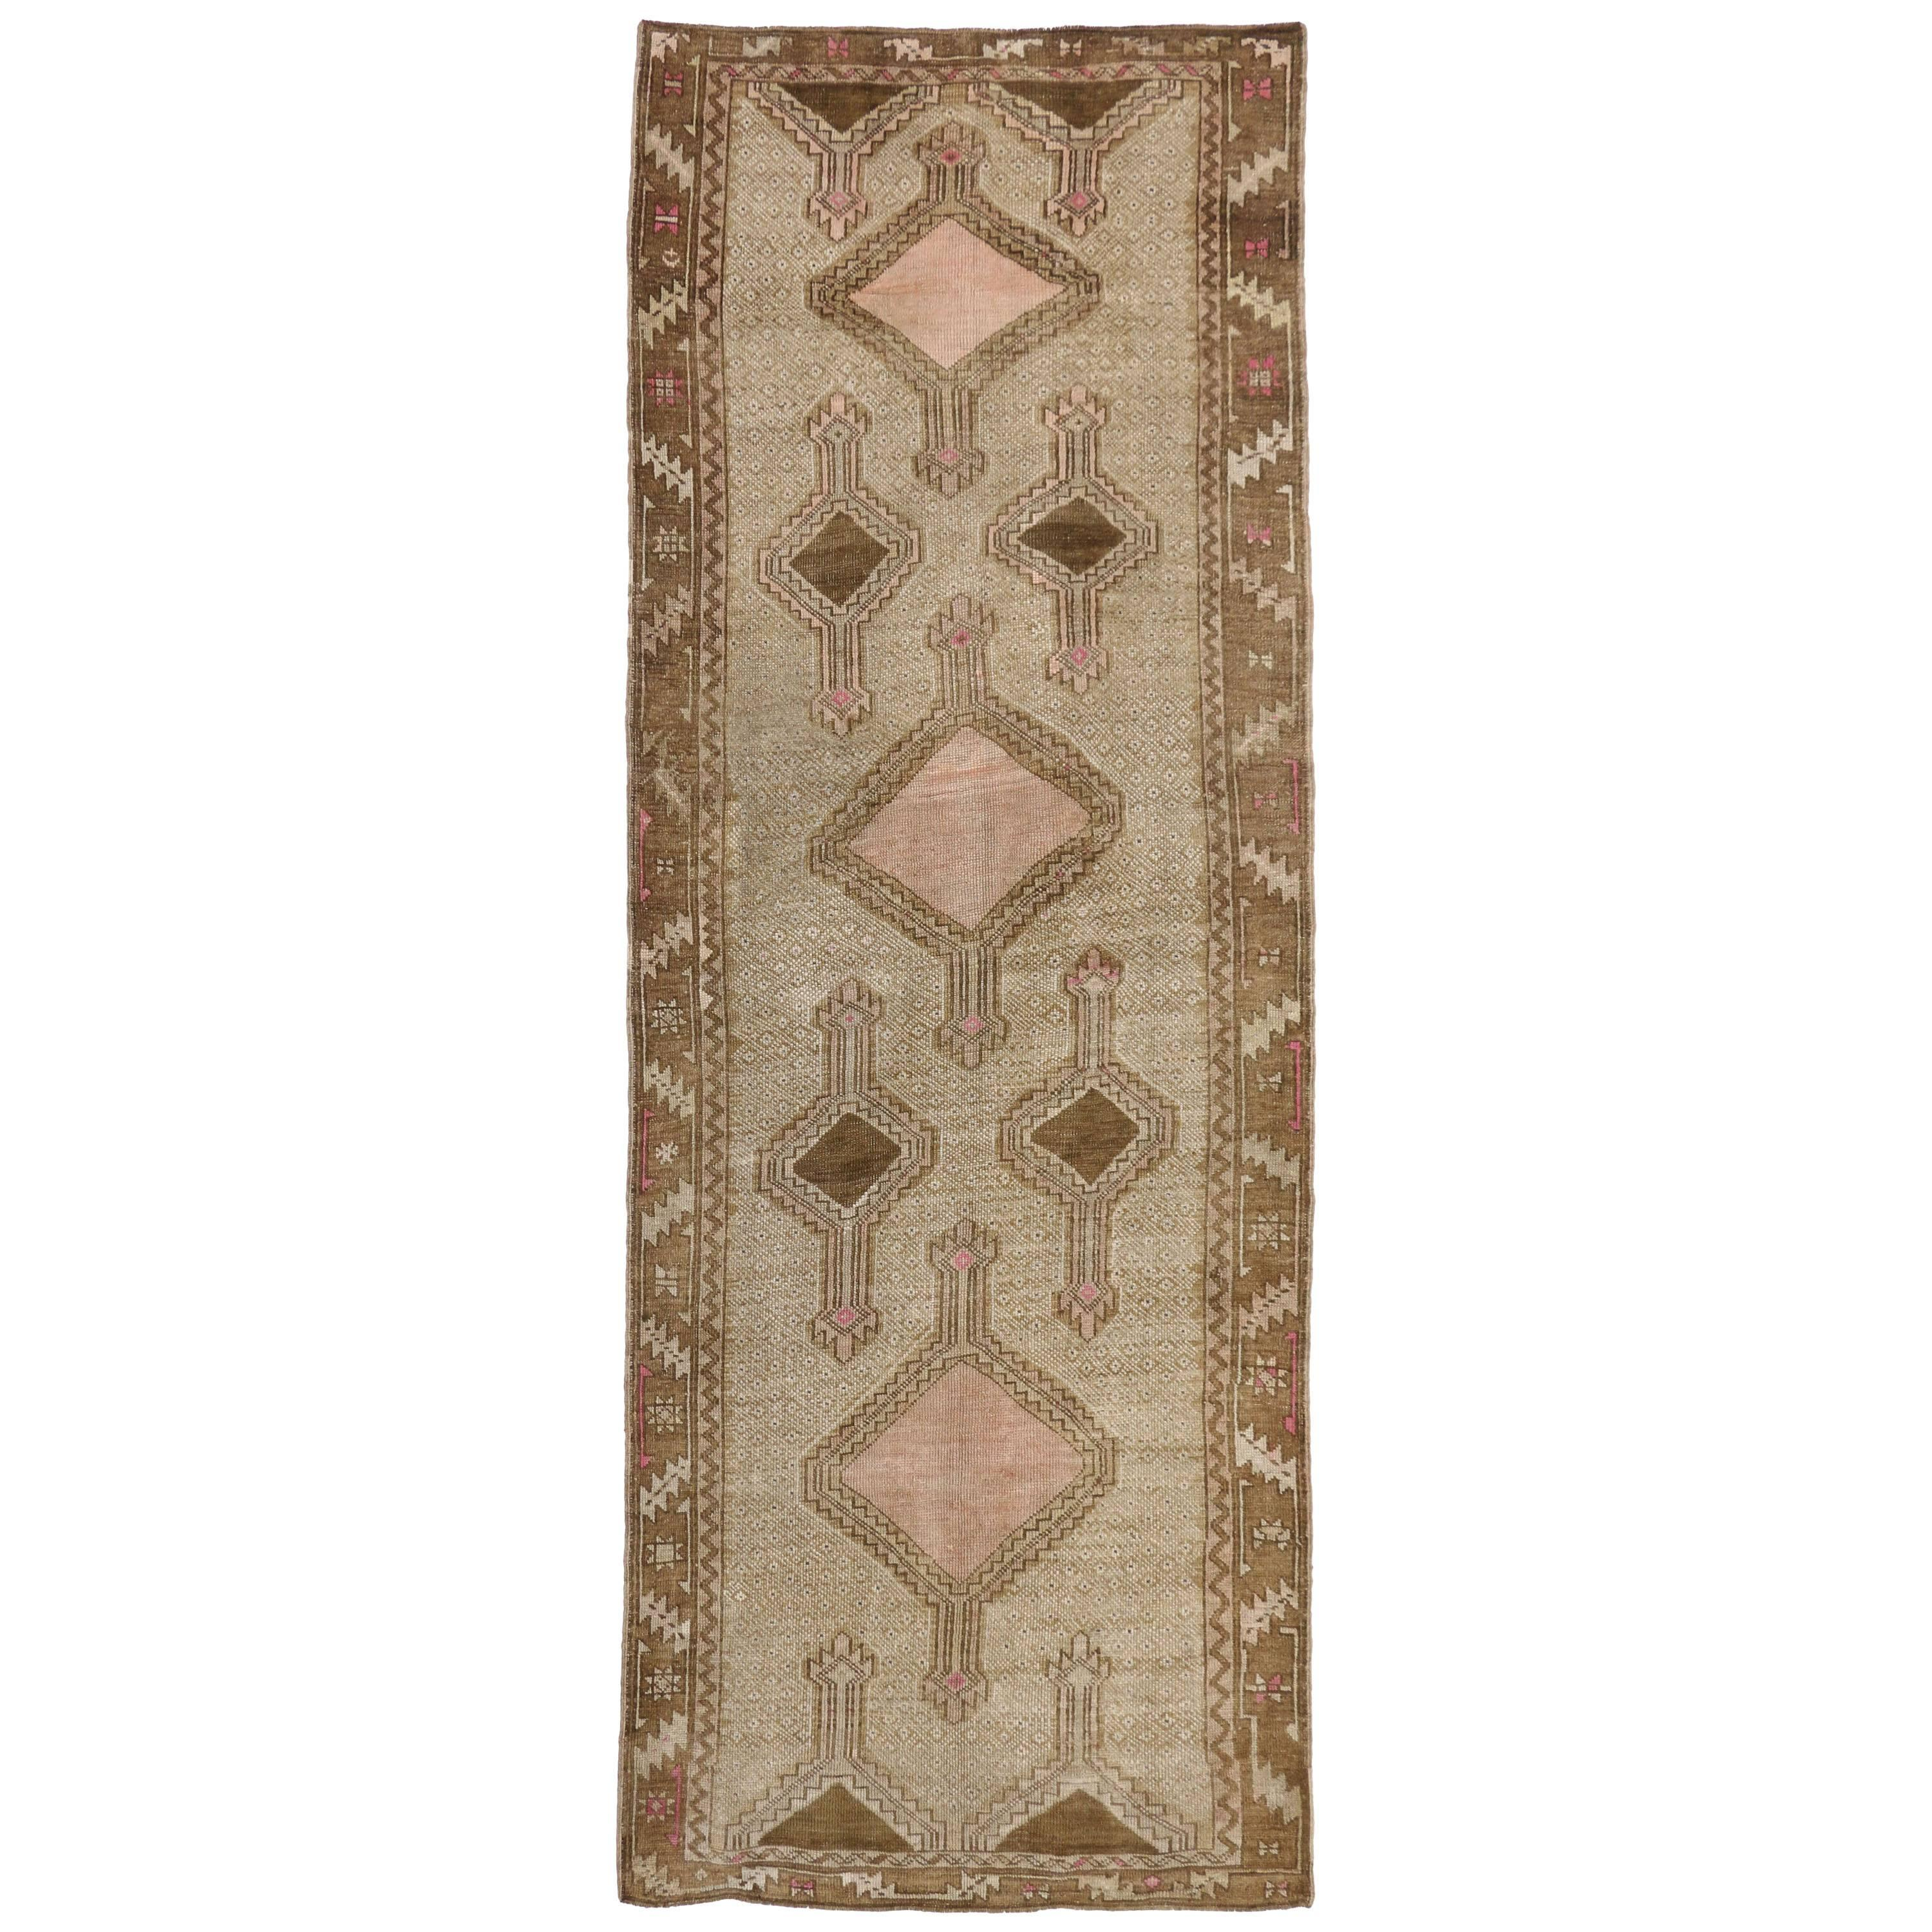 Vintage Turkish Kars Gallery Rug with Modern Bohemian Mission Style